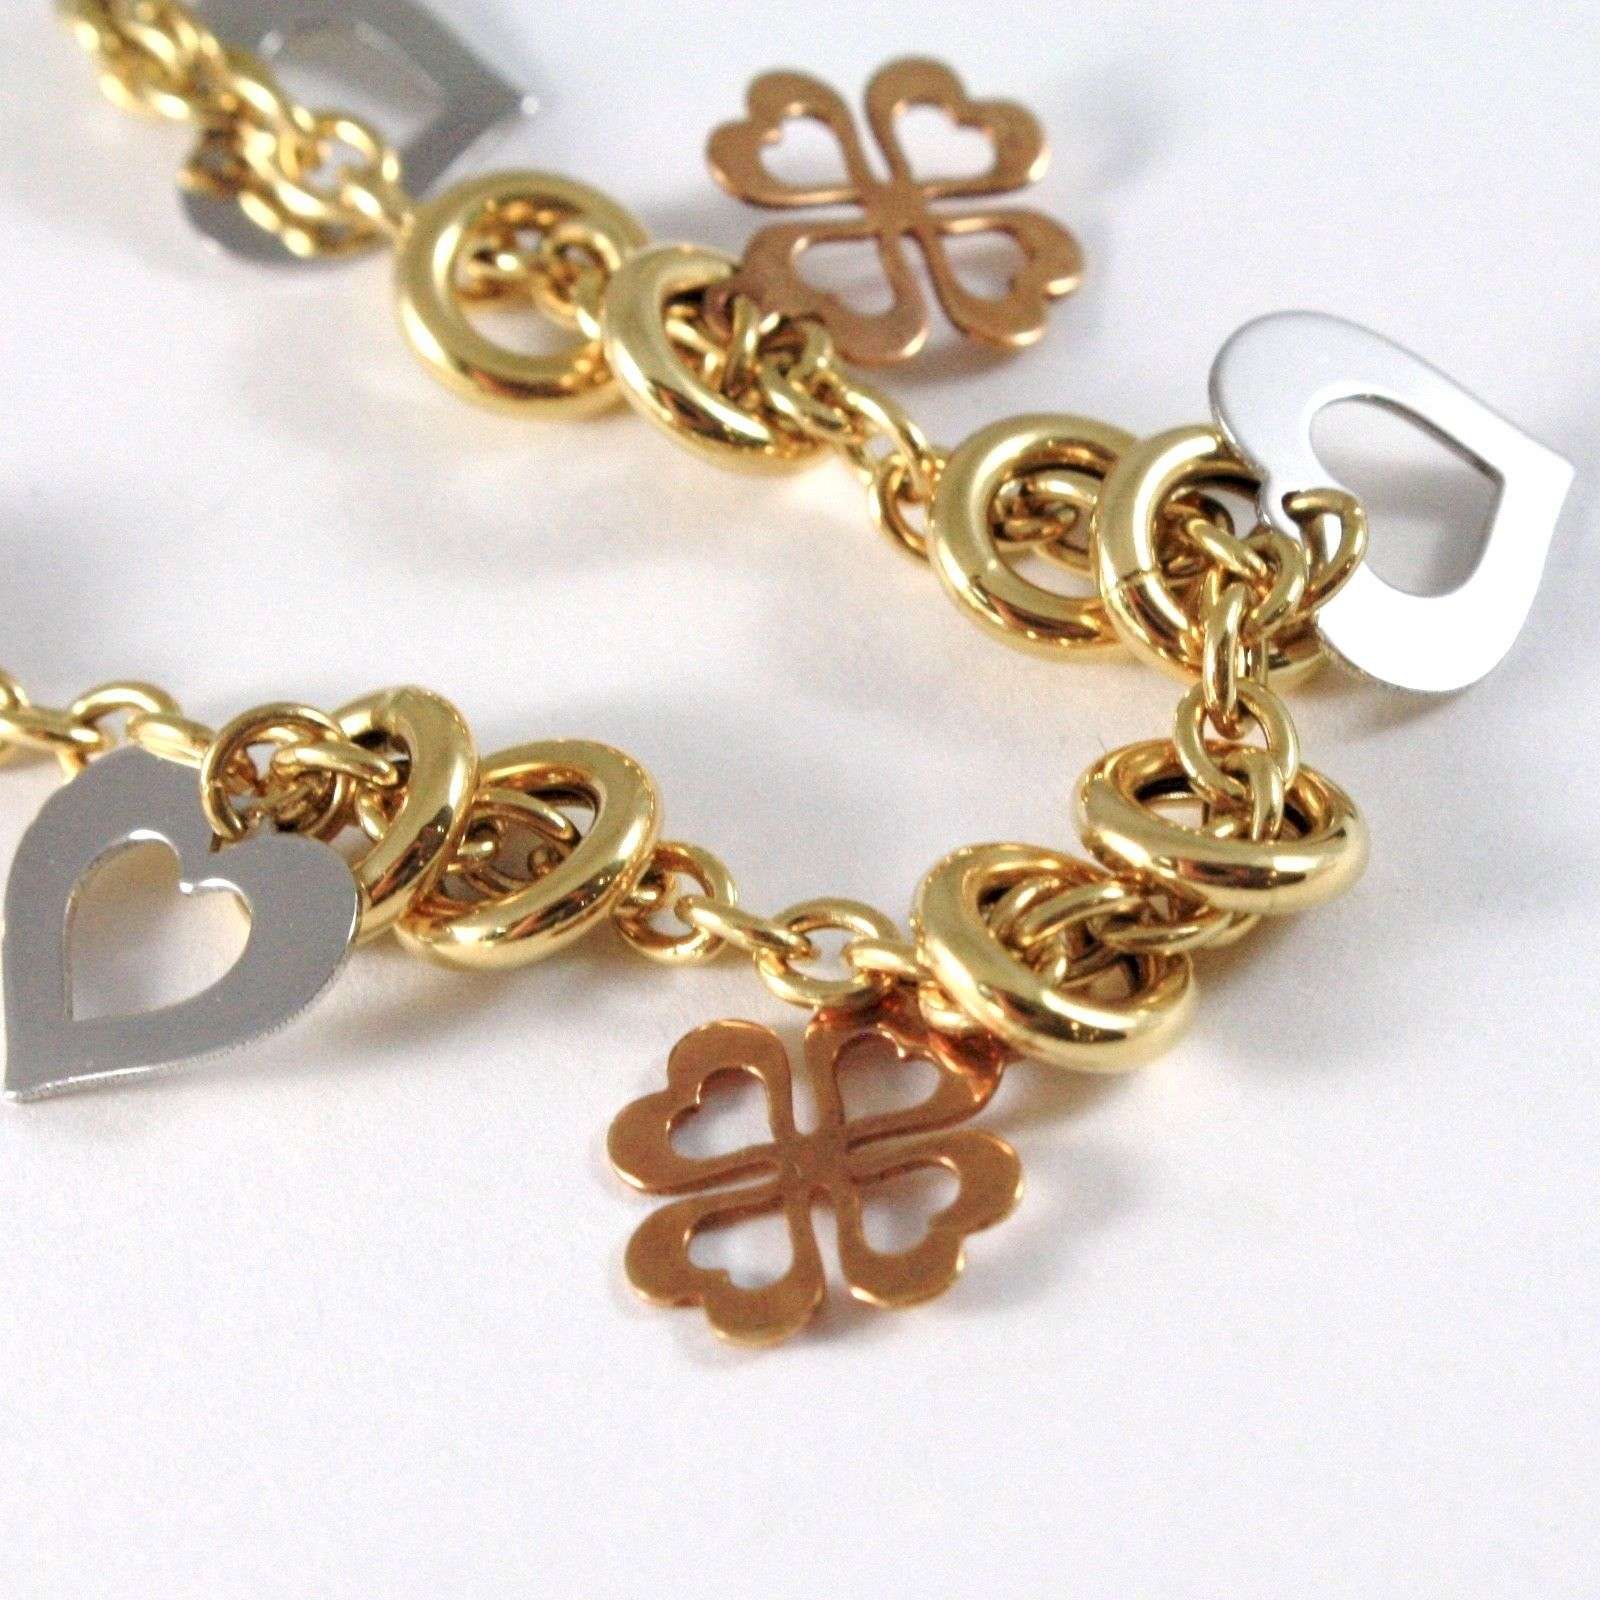 Gold Bracelet Yellow White Pink 18K 750, Circles, Four-Leaf Clover & Hearts, Cmd image 4